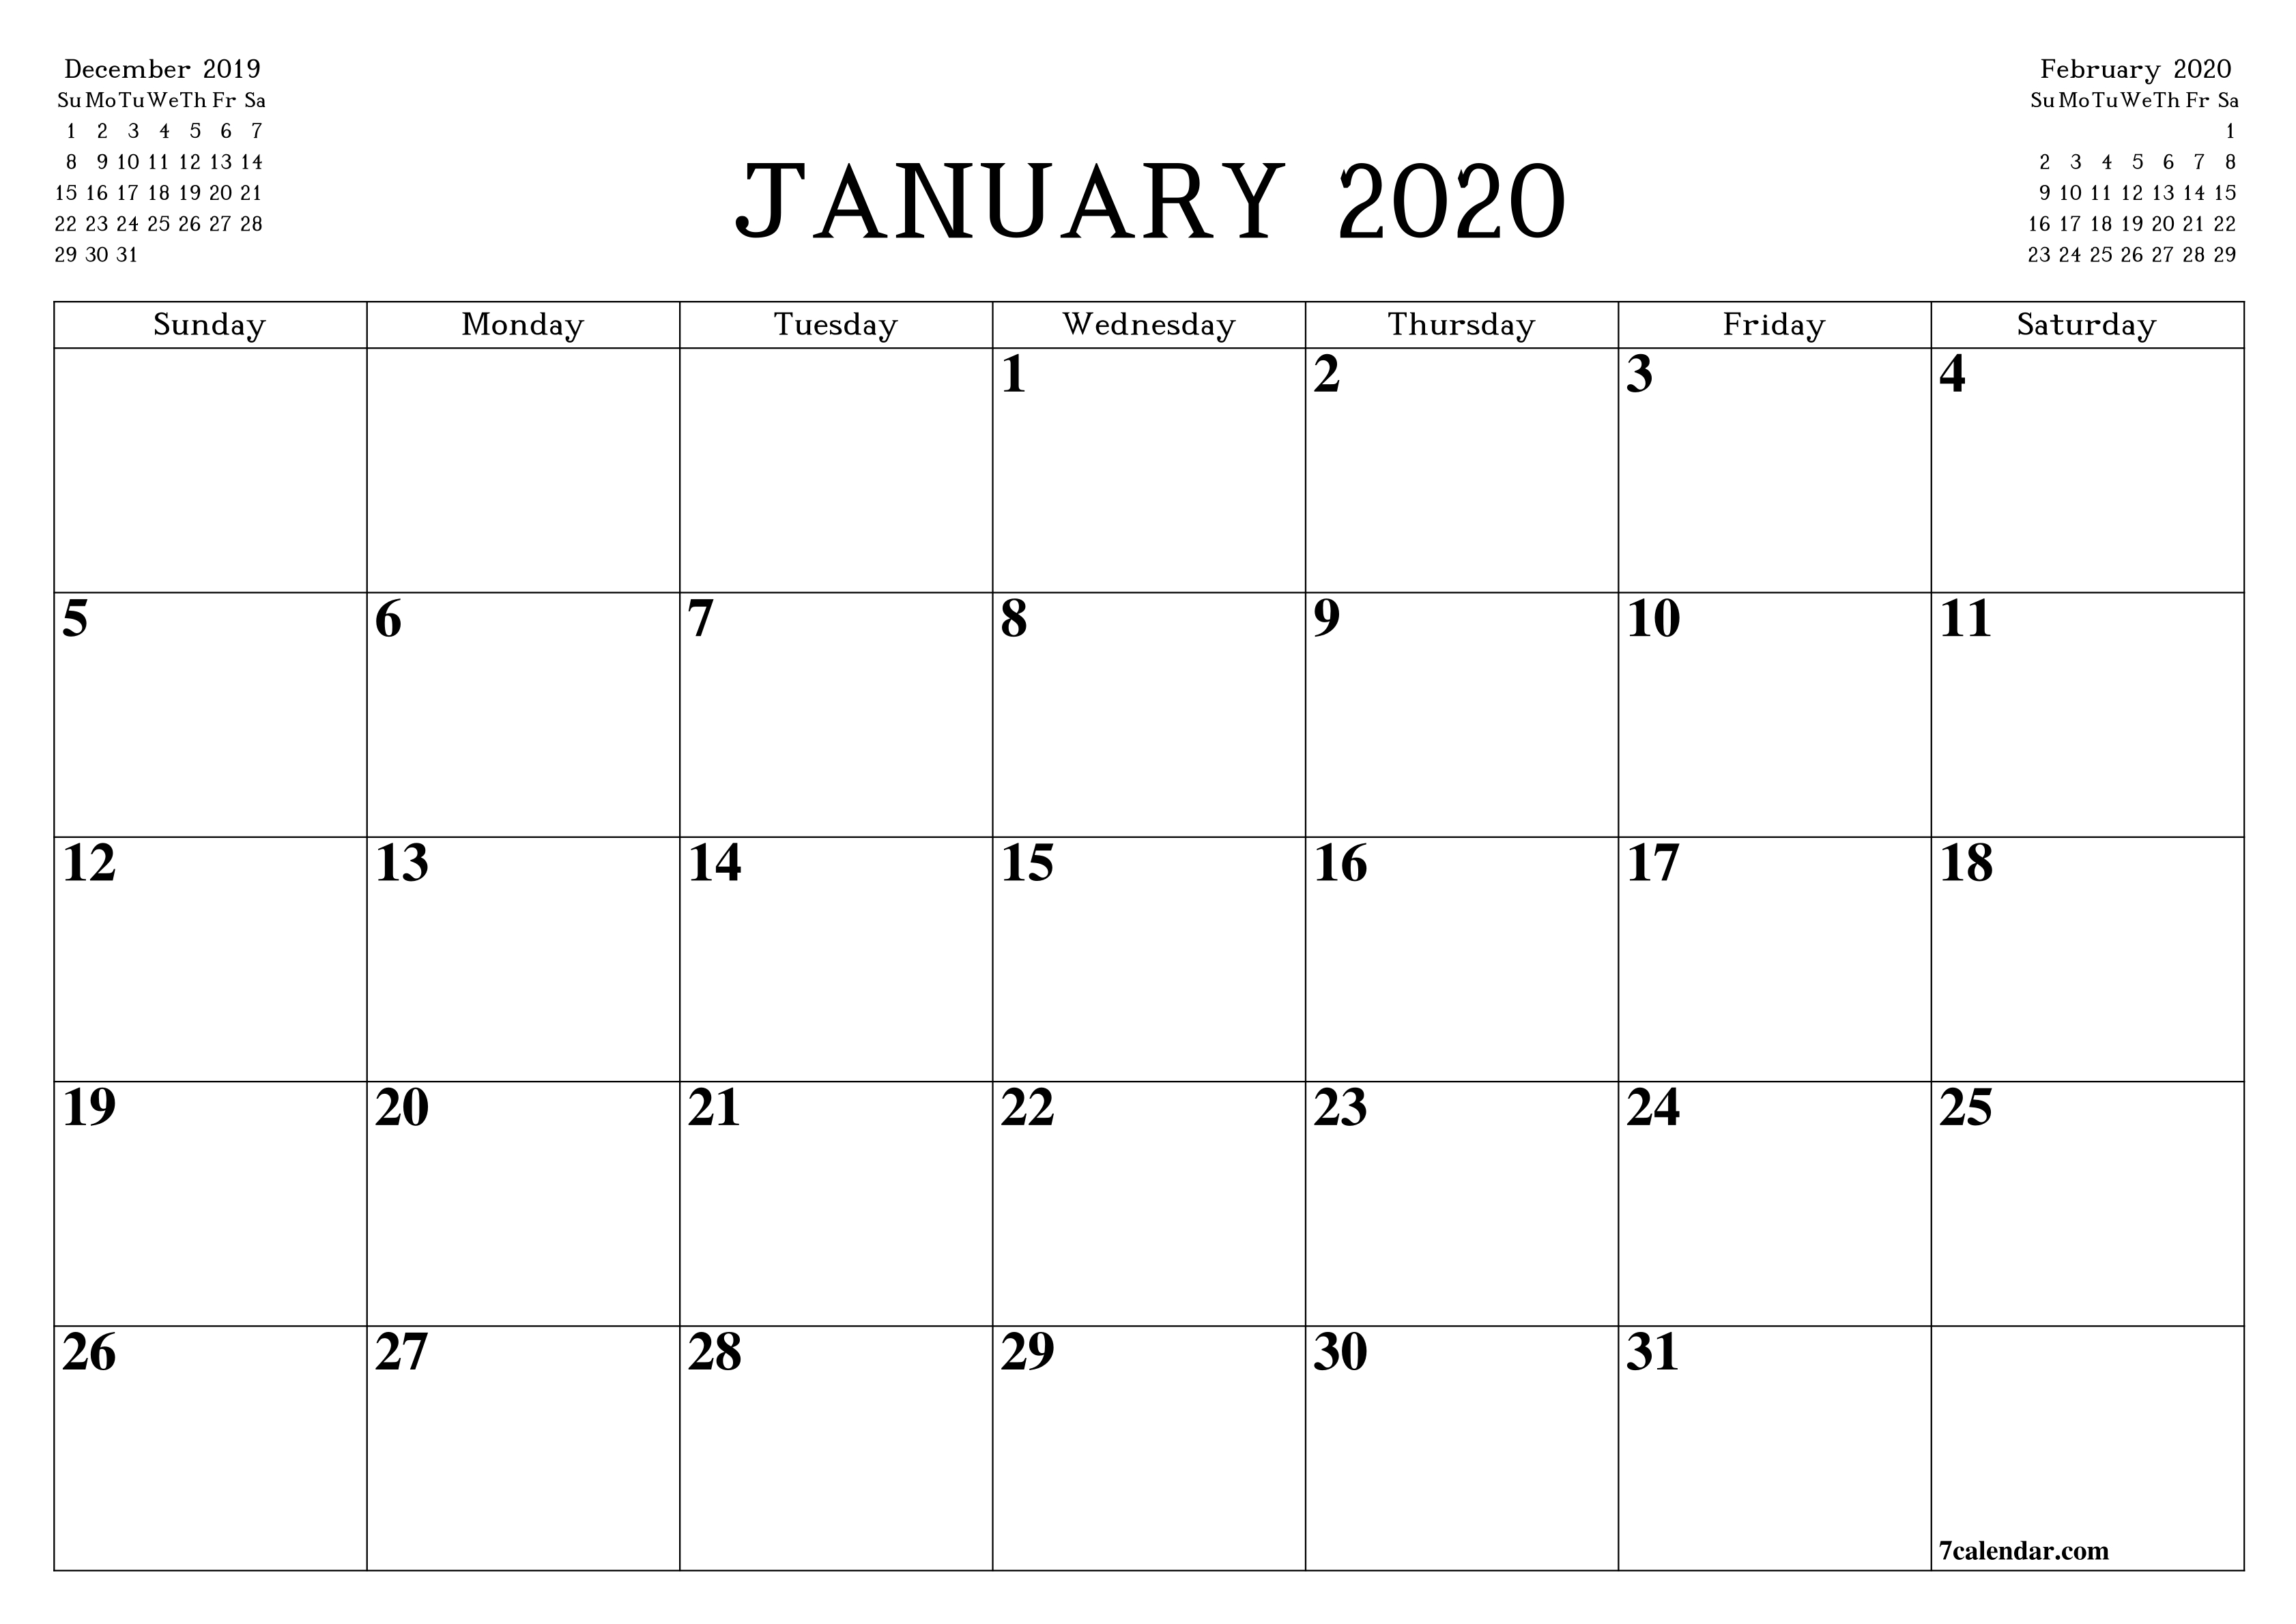 Free Printable Blank Monthly Calendar And Planner For regarding Free Blank Printable Monthly Calendar 2020